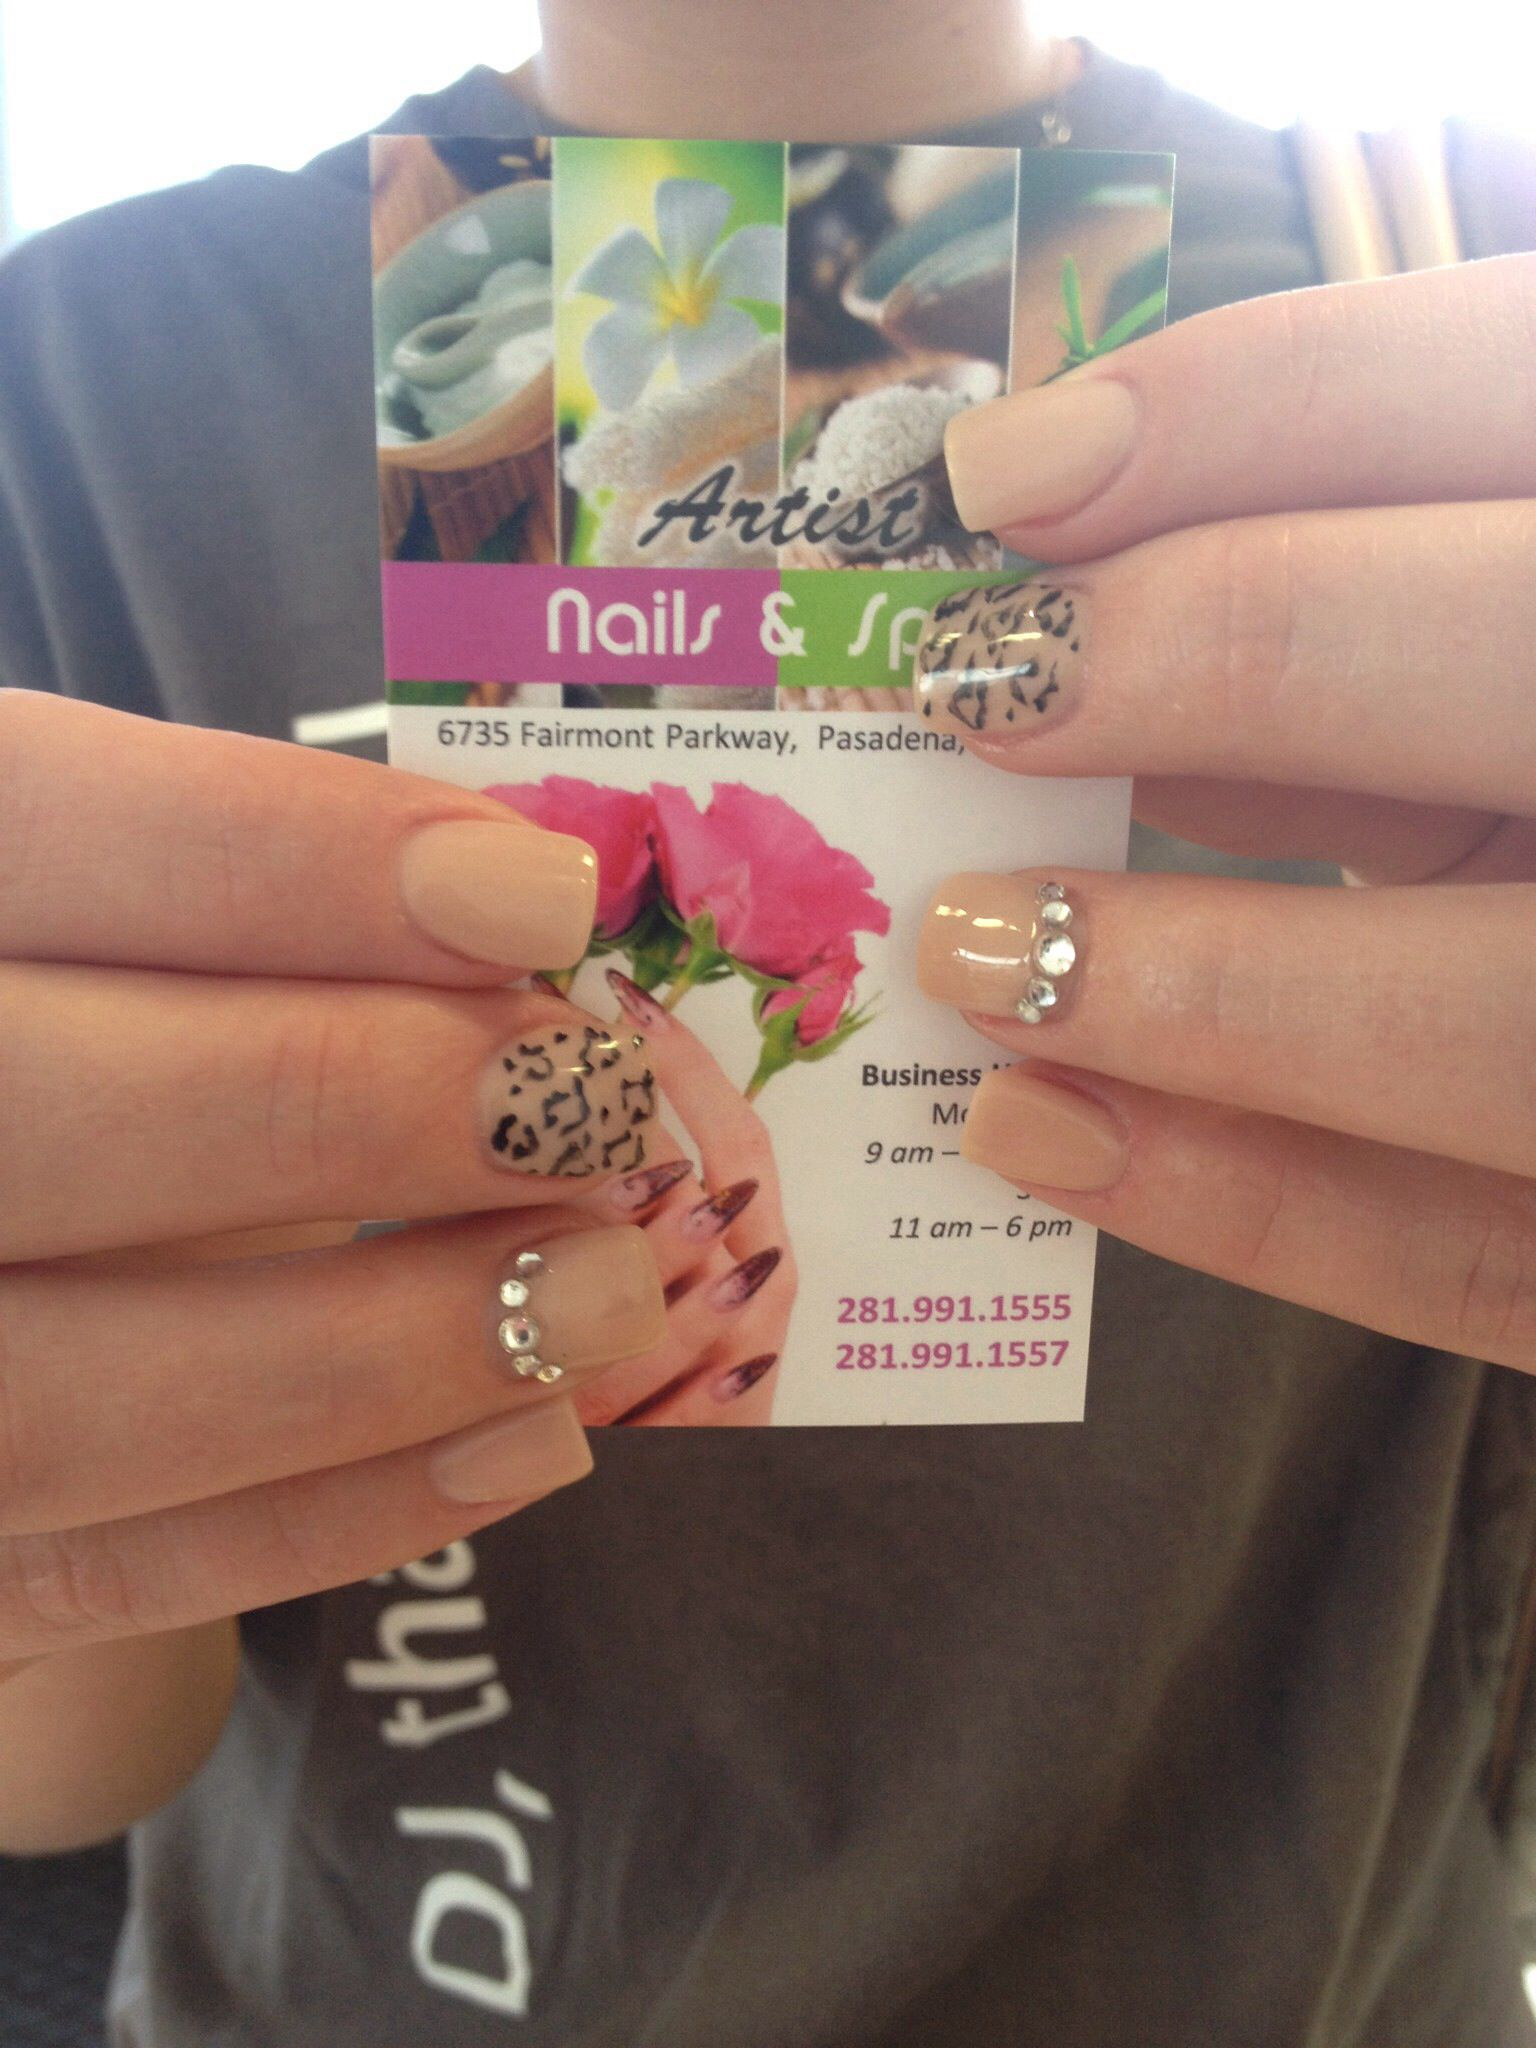 Pin On Artist Nails And Spa